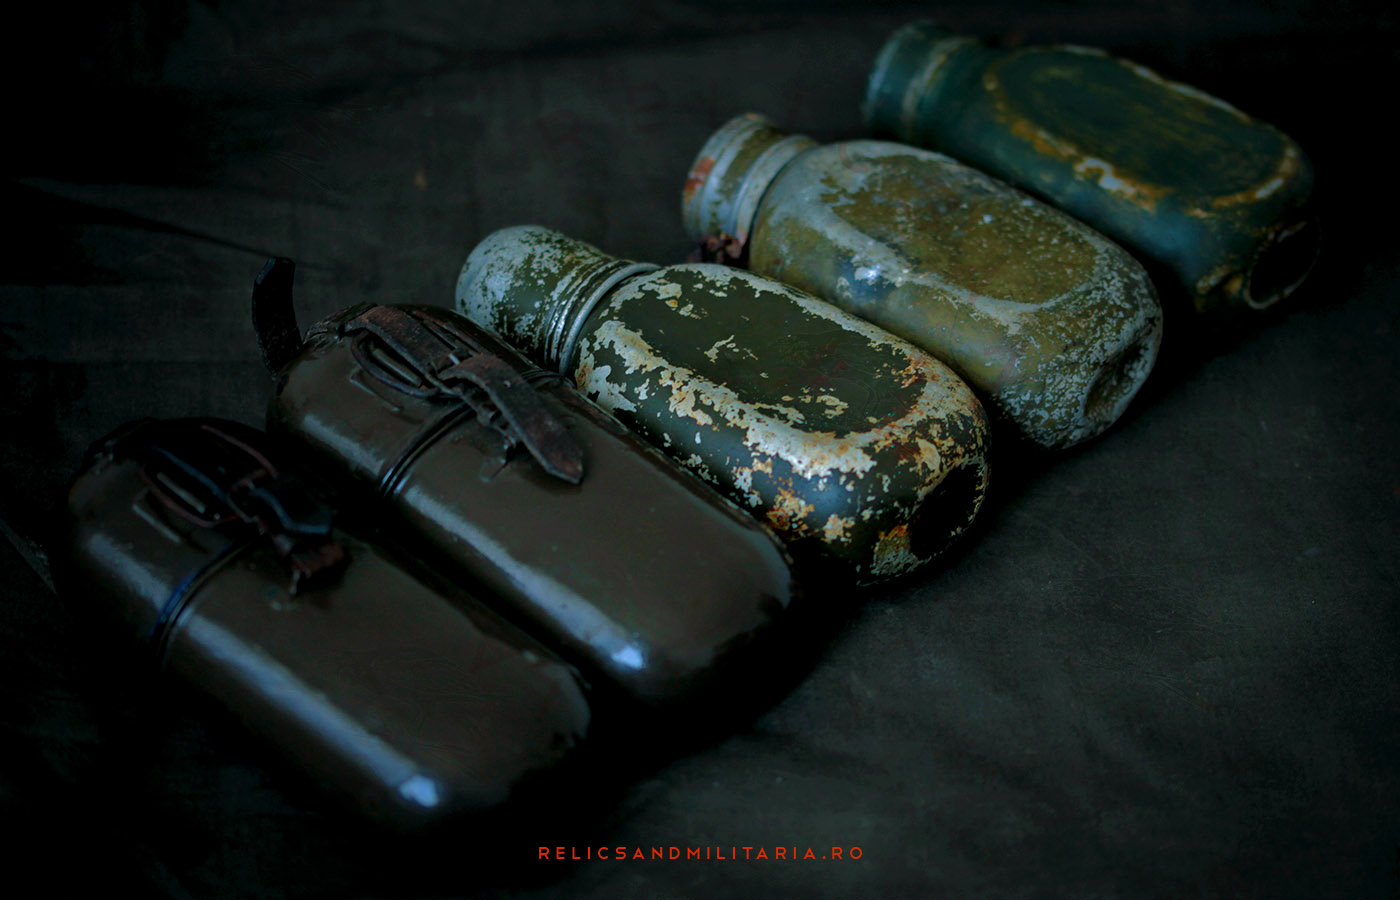 Romanian Army ww2 militaria water bottles canteen types